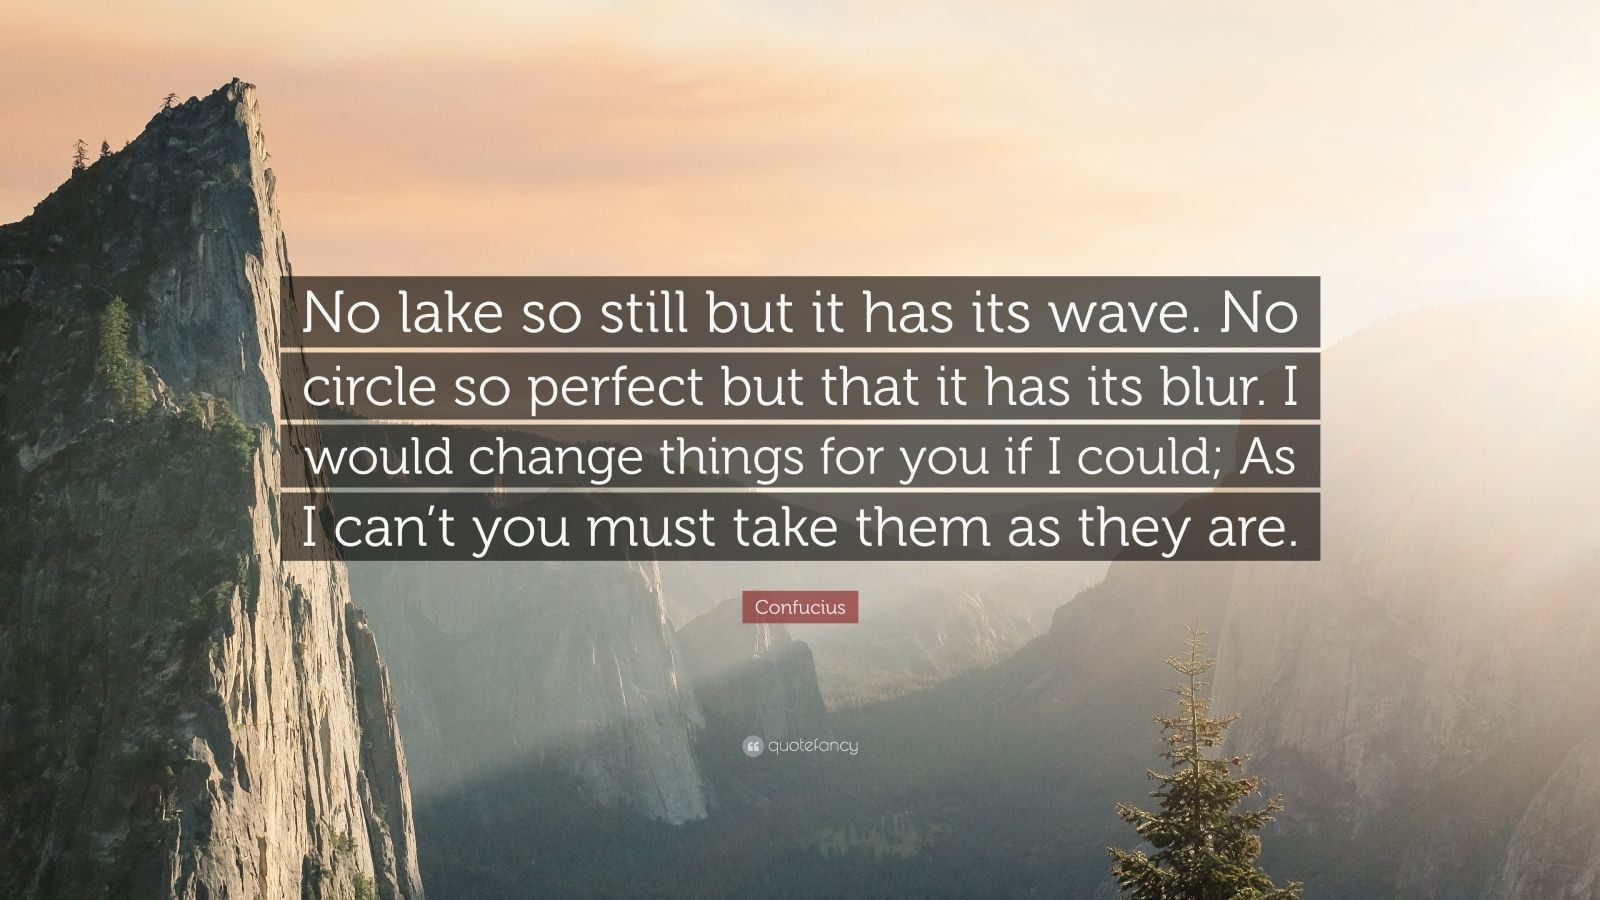 """Confucius Quote: """"No lake so still but it has its wave. No circle so perfect but that it has its blur. I would change things for you if I could; As I can't you must take them as they are."""""""